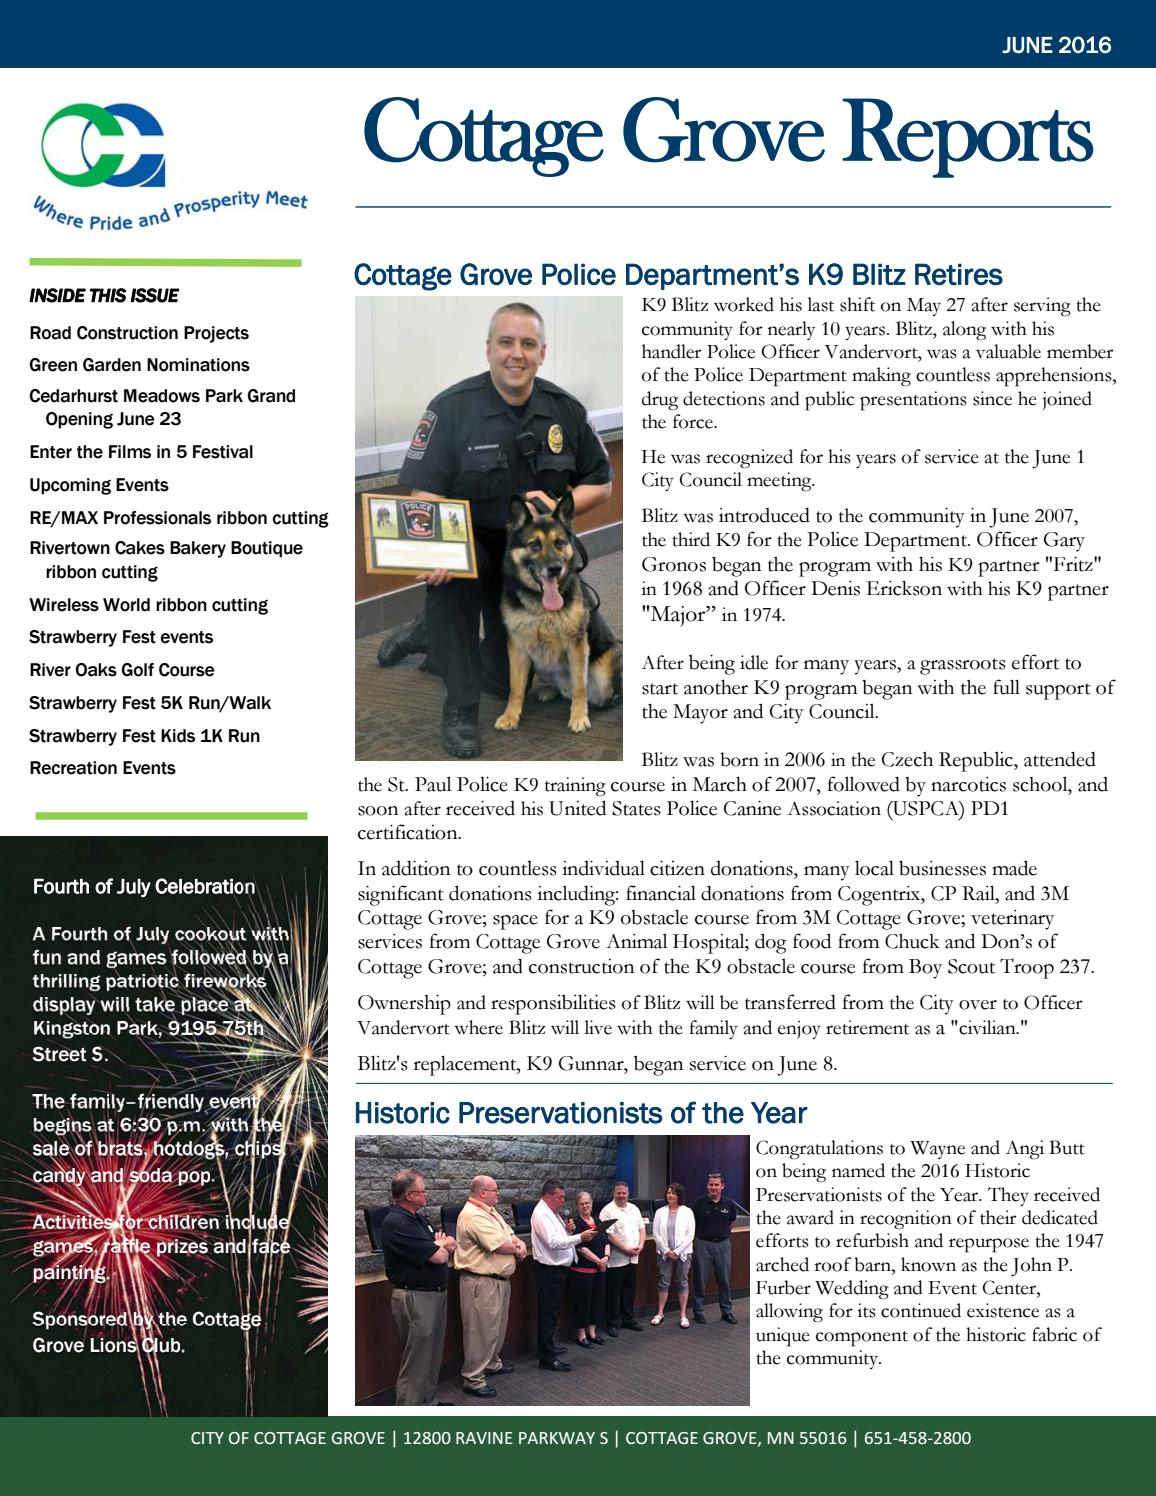 Cottage Grove Reports June 2016 By City Of Cottage Grove